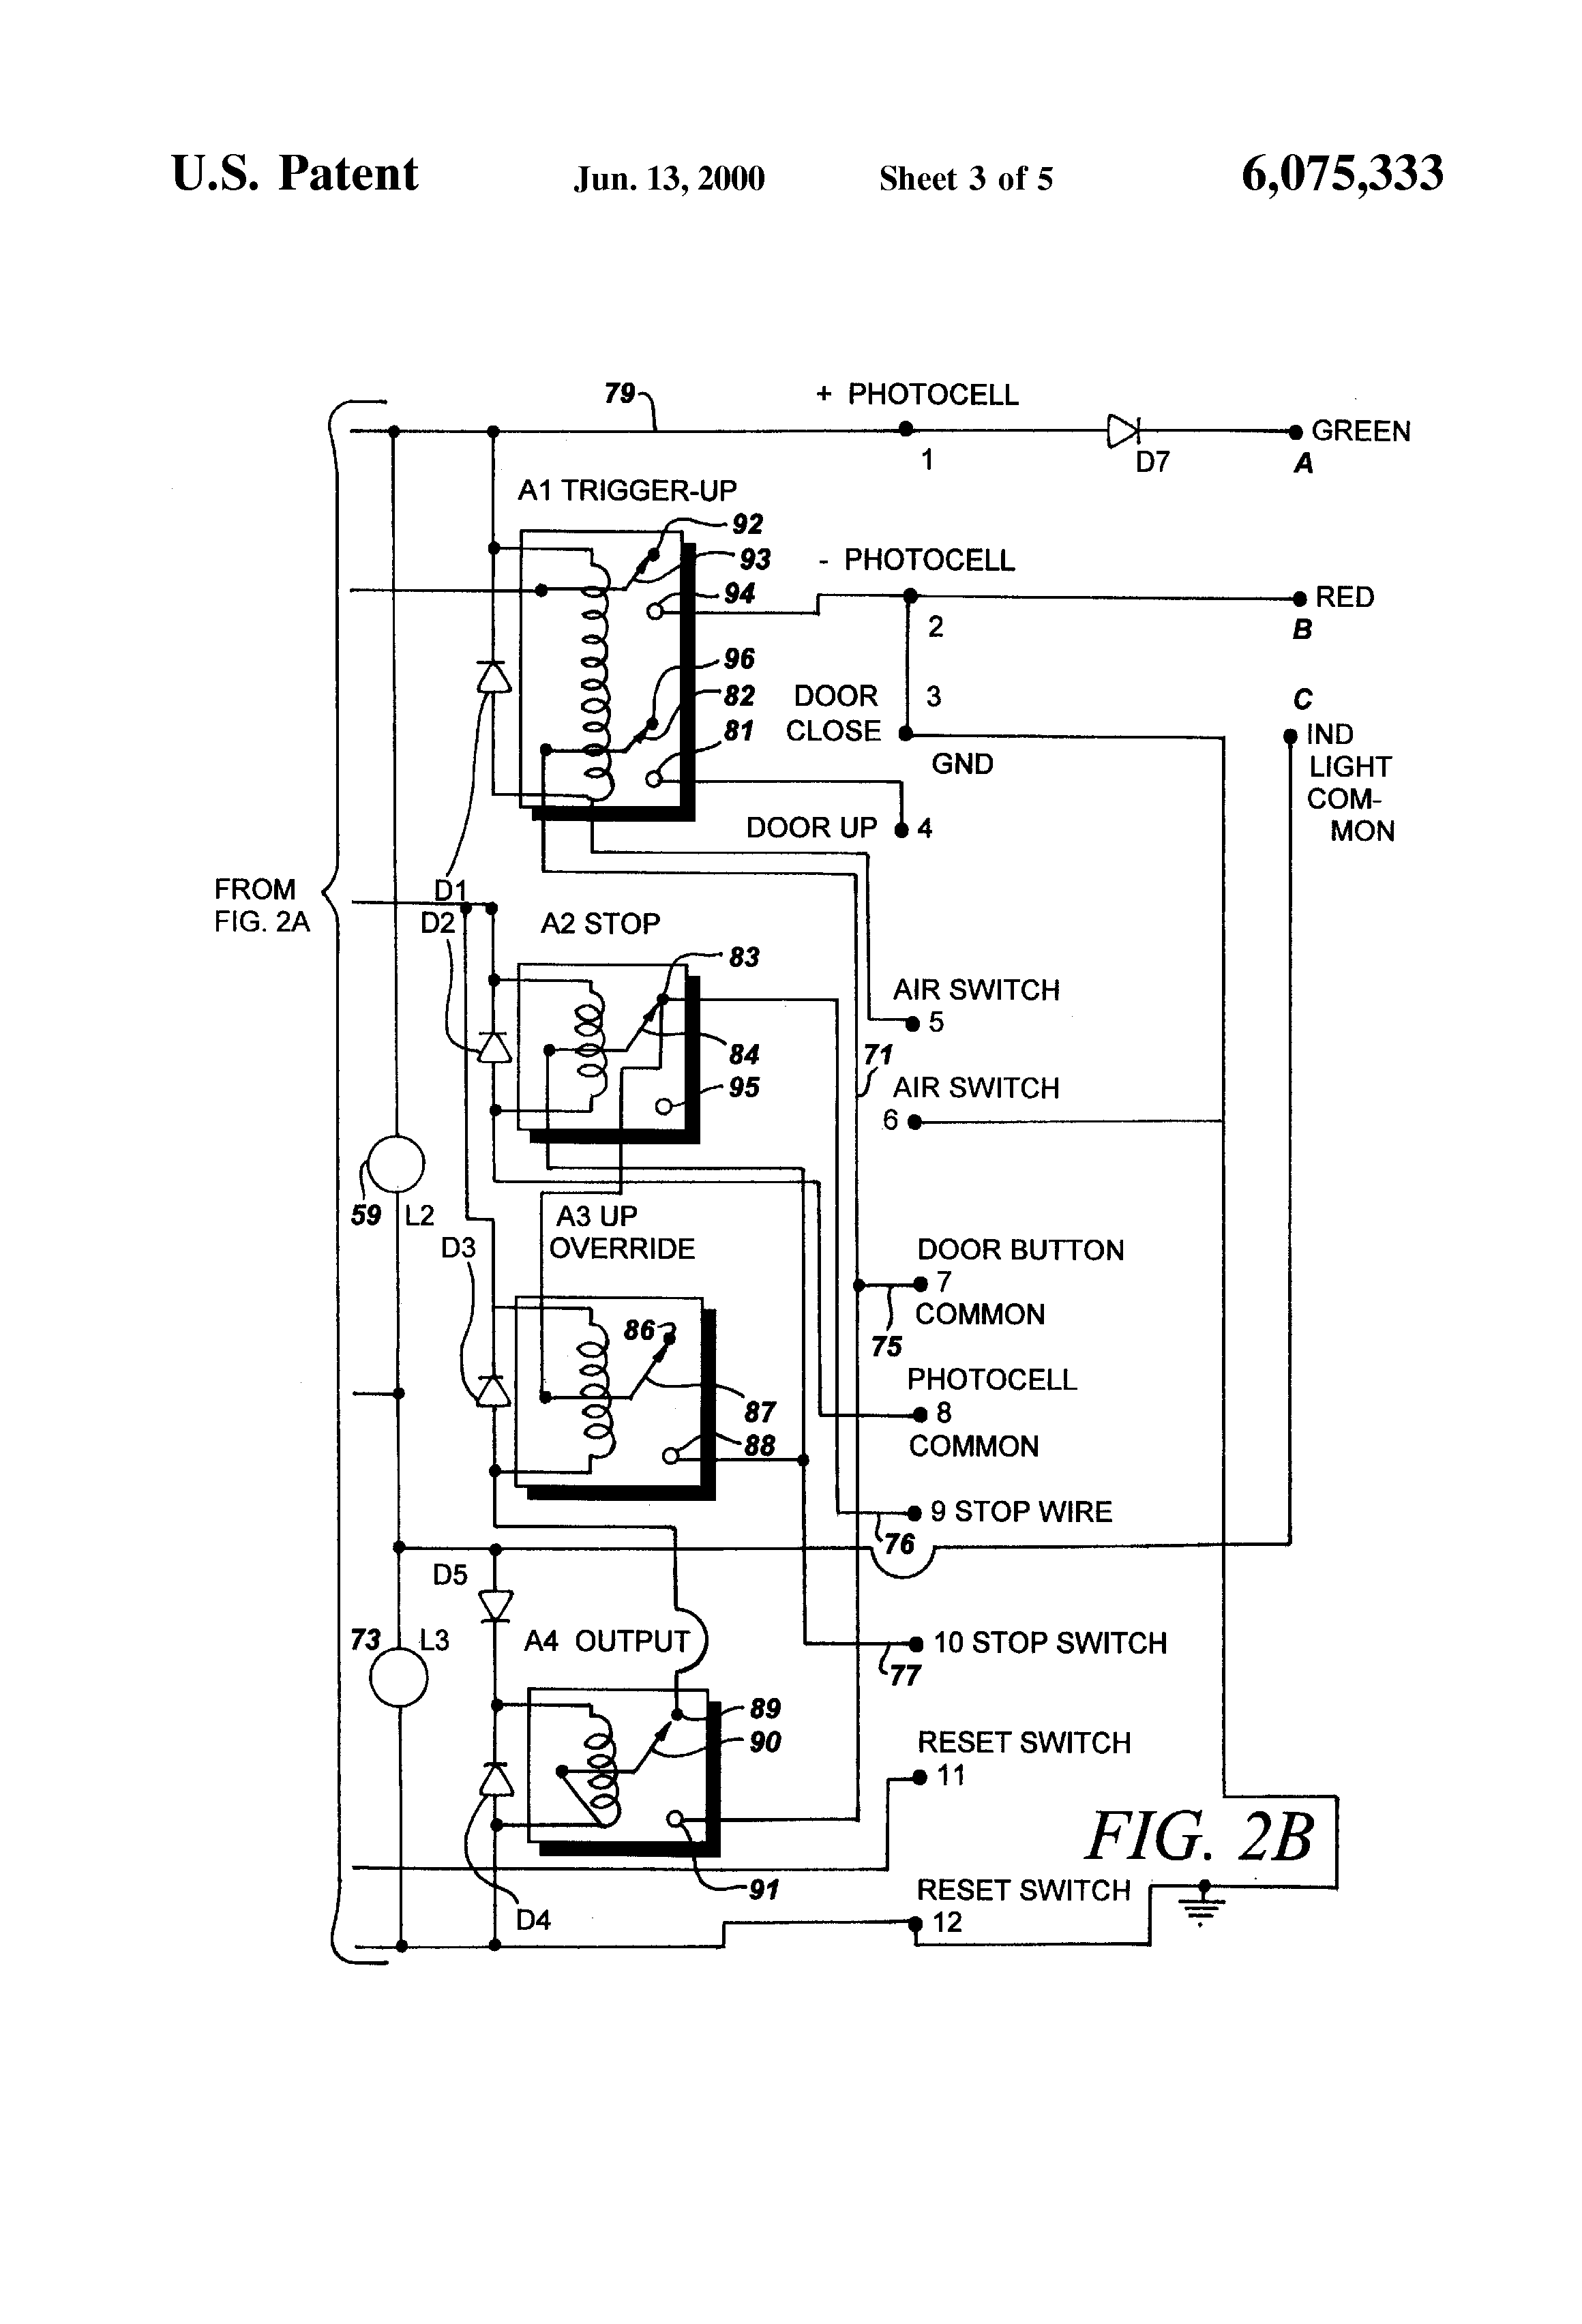 US6075333 3 patent us6075333 kit for retrofitting manually operated electric telectron rd14-6 wiring diagram at aneh.co